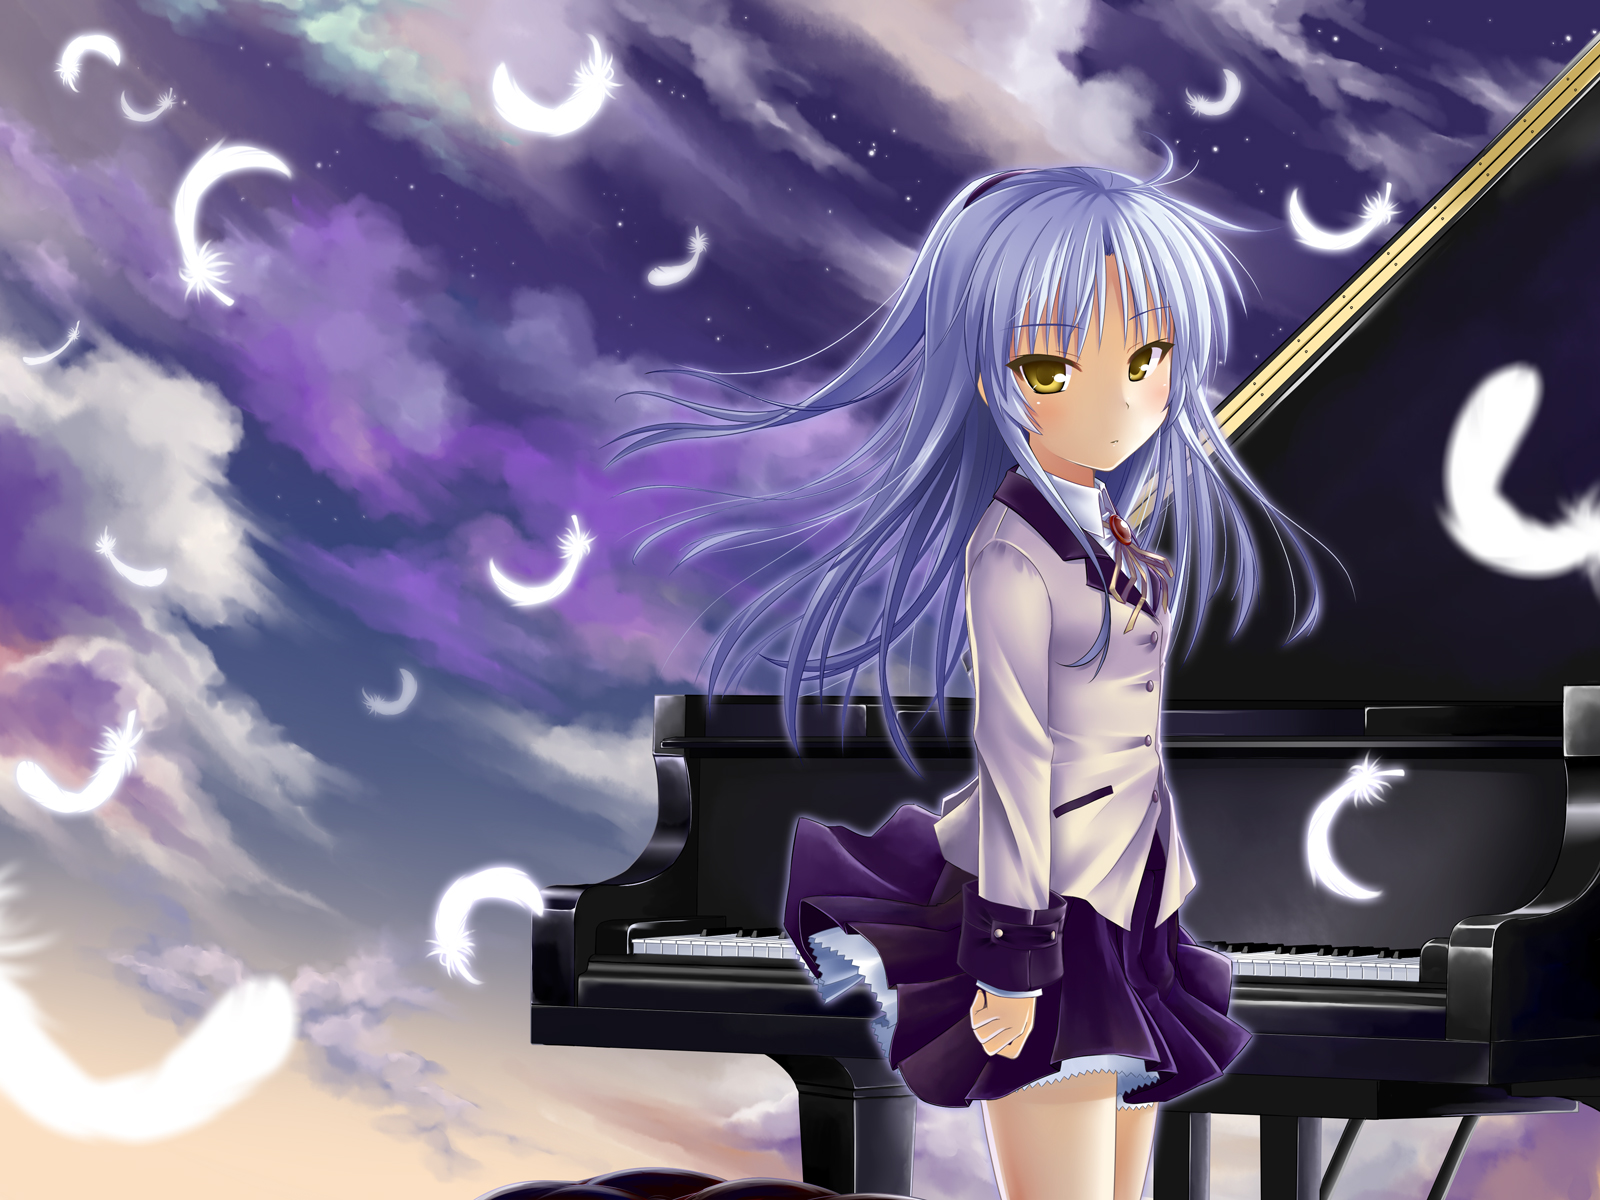 Anime Girl With Headphones Wallpaper Hd Angel Beats Wallpaper And Background Image 1600x1200